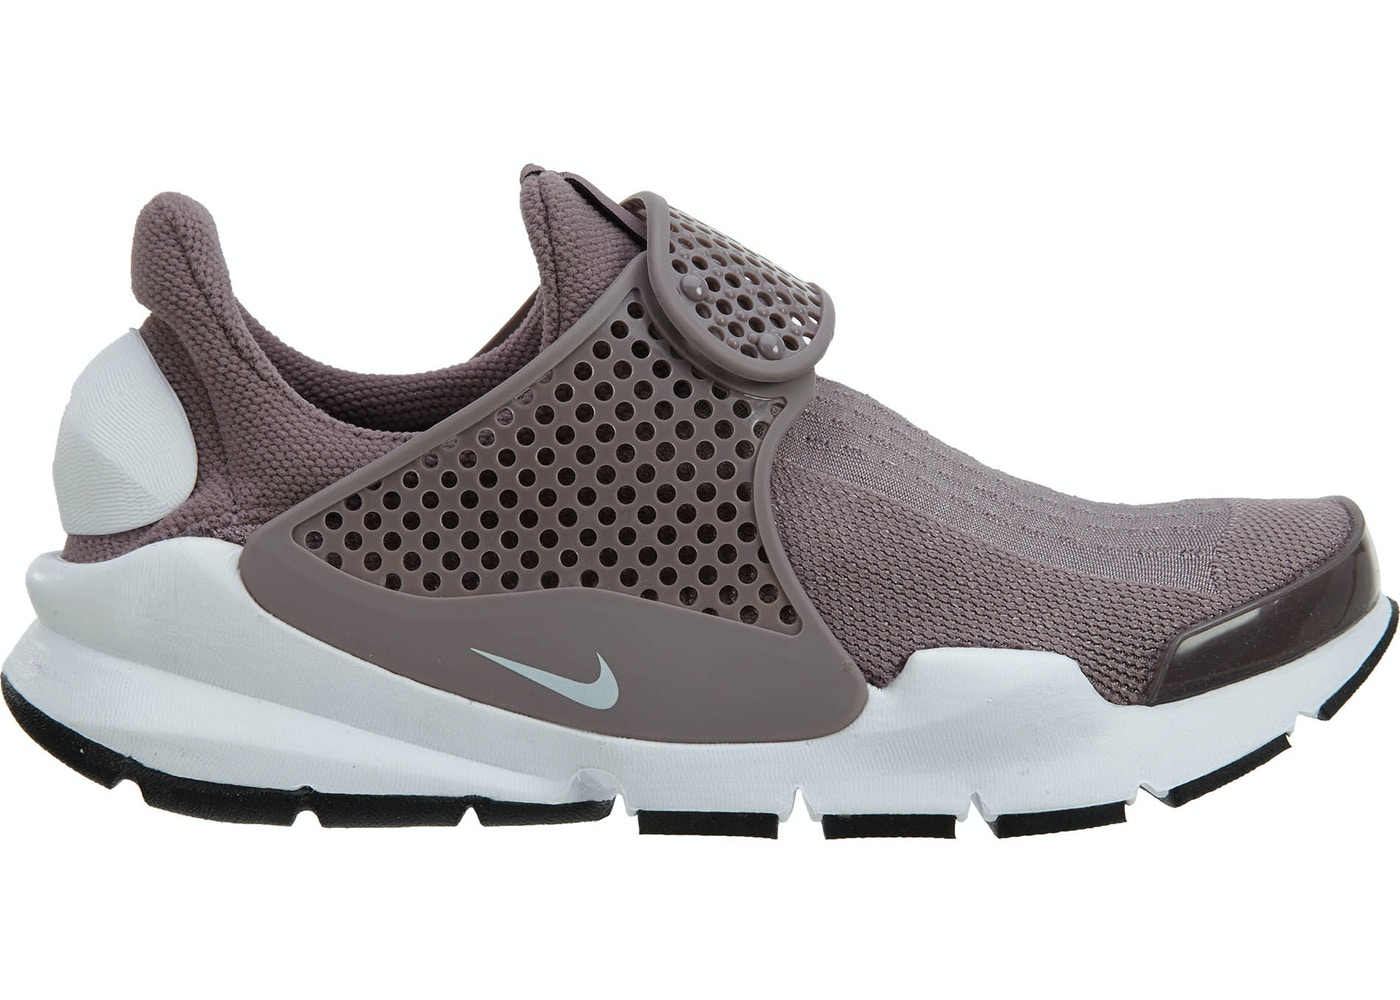 a491d9df Sell. or Ask. Size: 5W. View All Bids. Nike Sock Dart Taupe Grey White-Black  ...